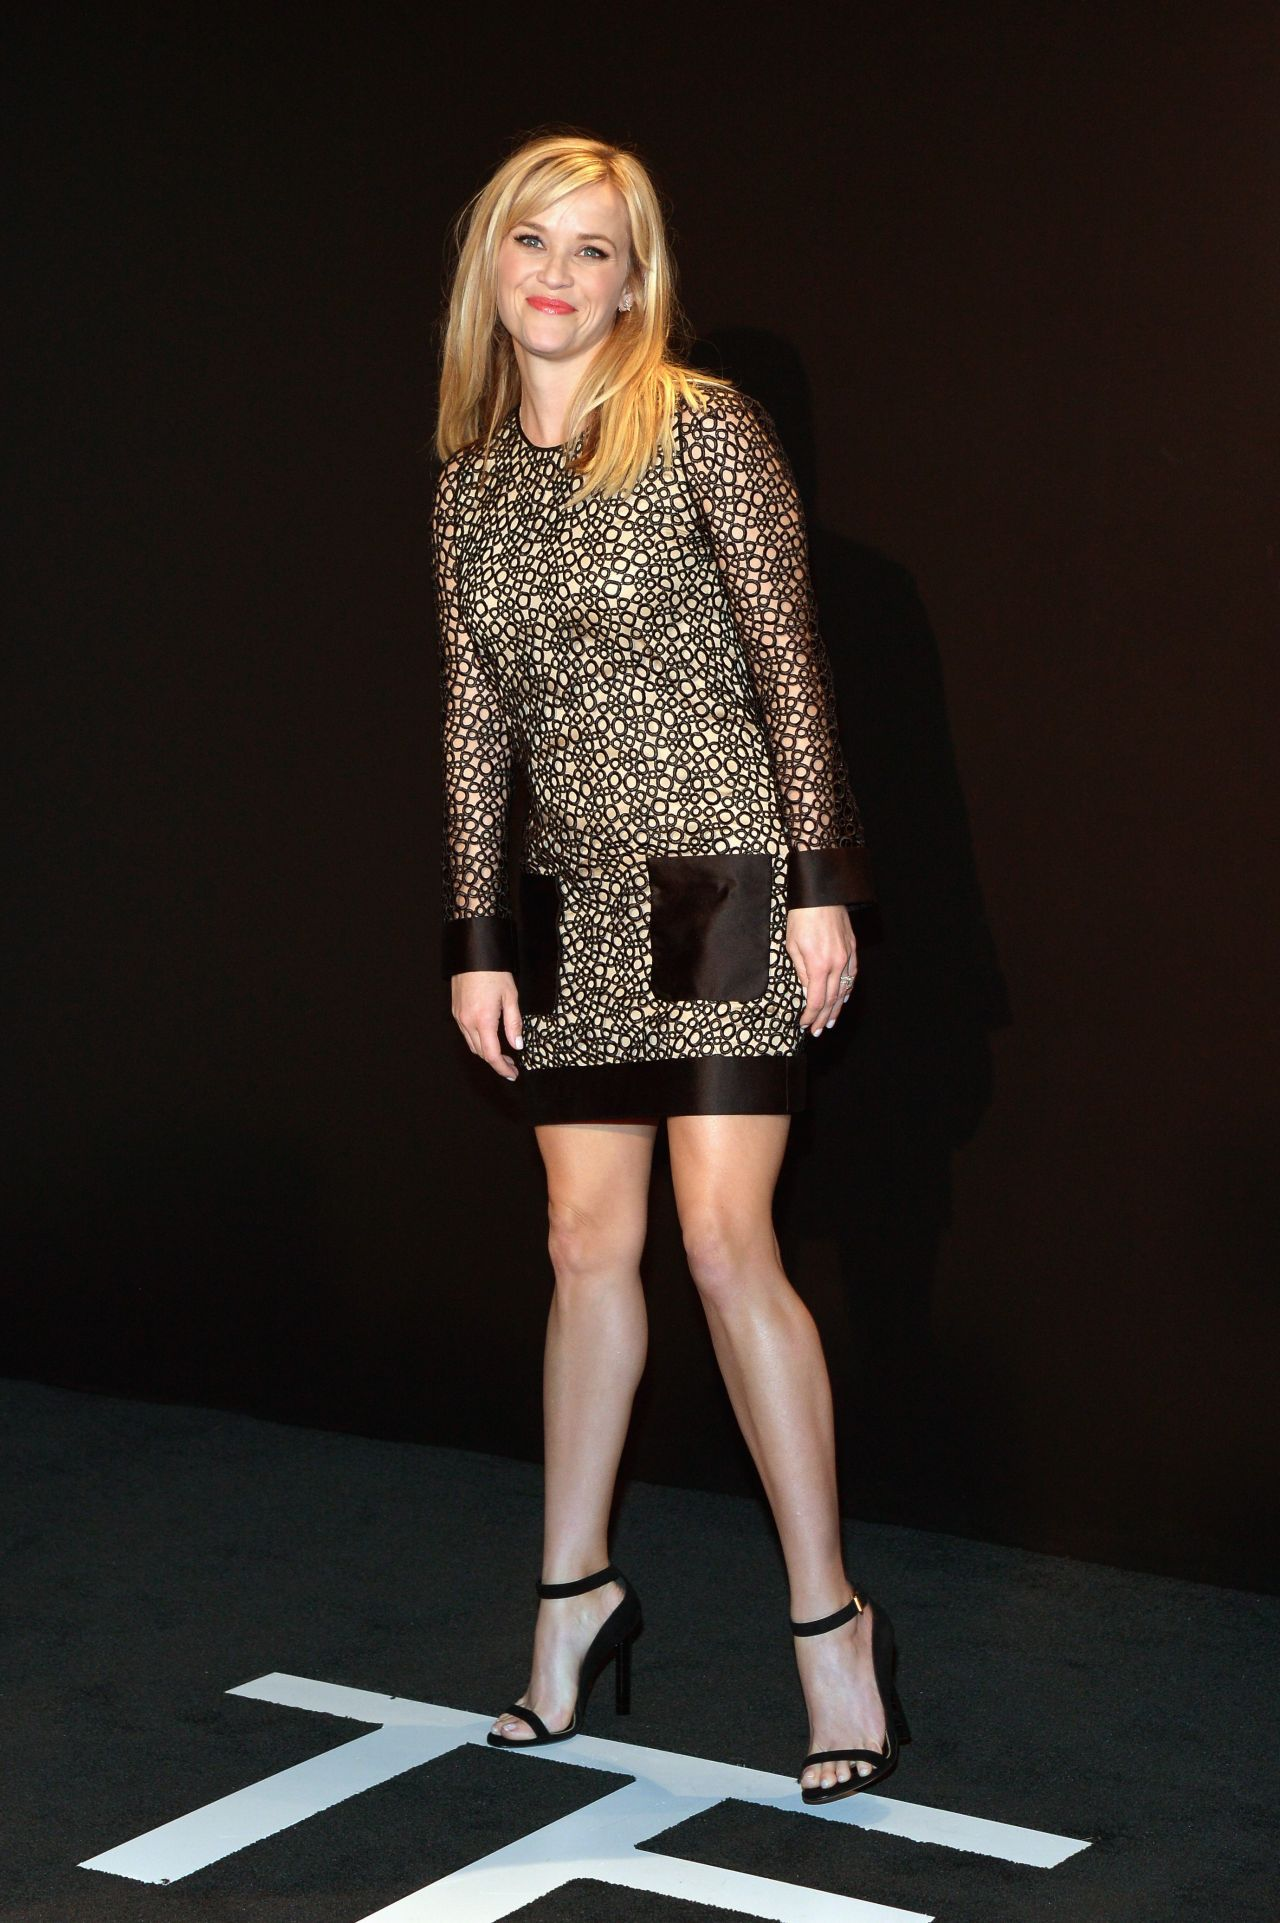 reese-witherspoon-tom-ford-autumn-winter-2015-womenswear-collection-presentation-in-los-angeles_4